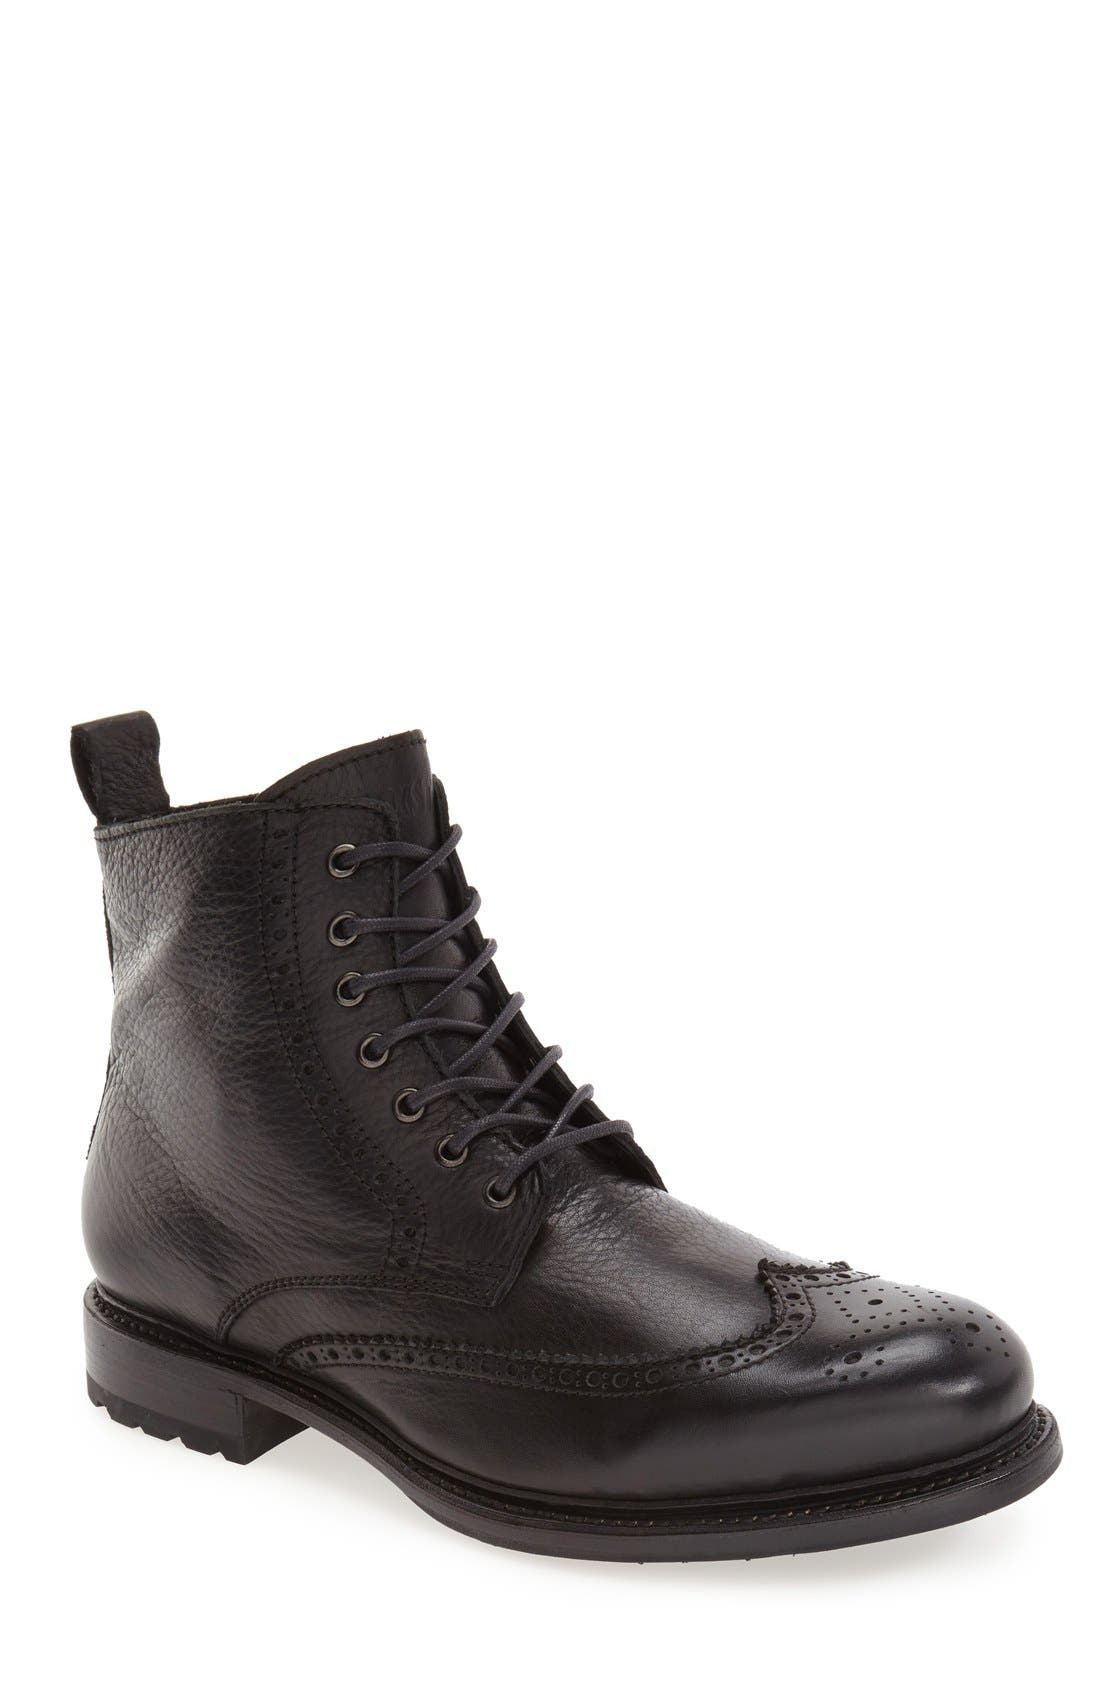 'KM24' Wingtip Boot,                             Main thumbnail 1, color,                             Black